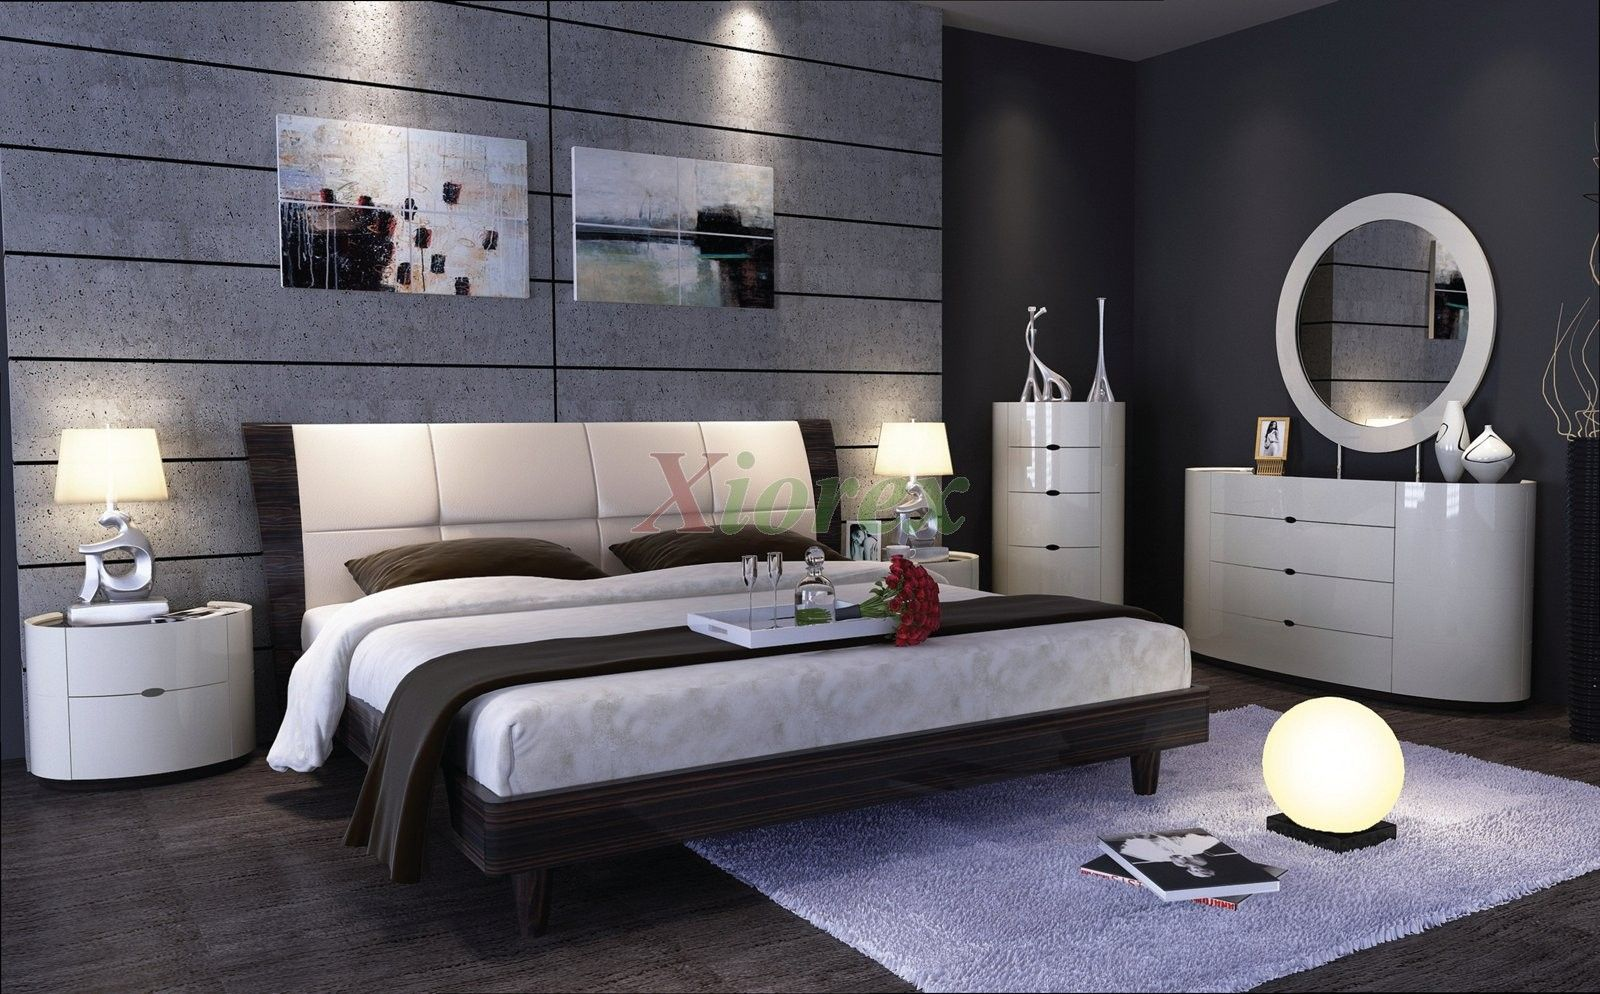 Gray Wall For Contemporary Bedroom Sets With Oval Wall Mirror And Bedroom  Vanity White Color Also Wood Floor   Contemporary Bedroom Sets For Simply  Stunning ...